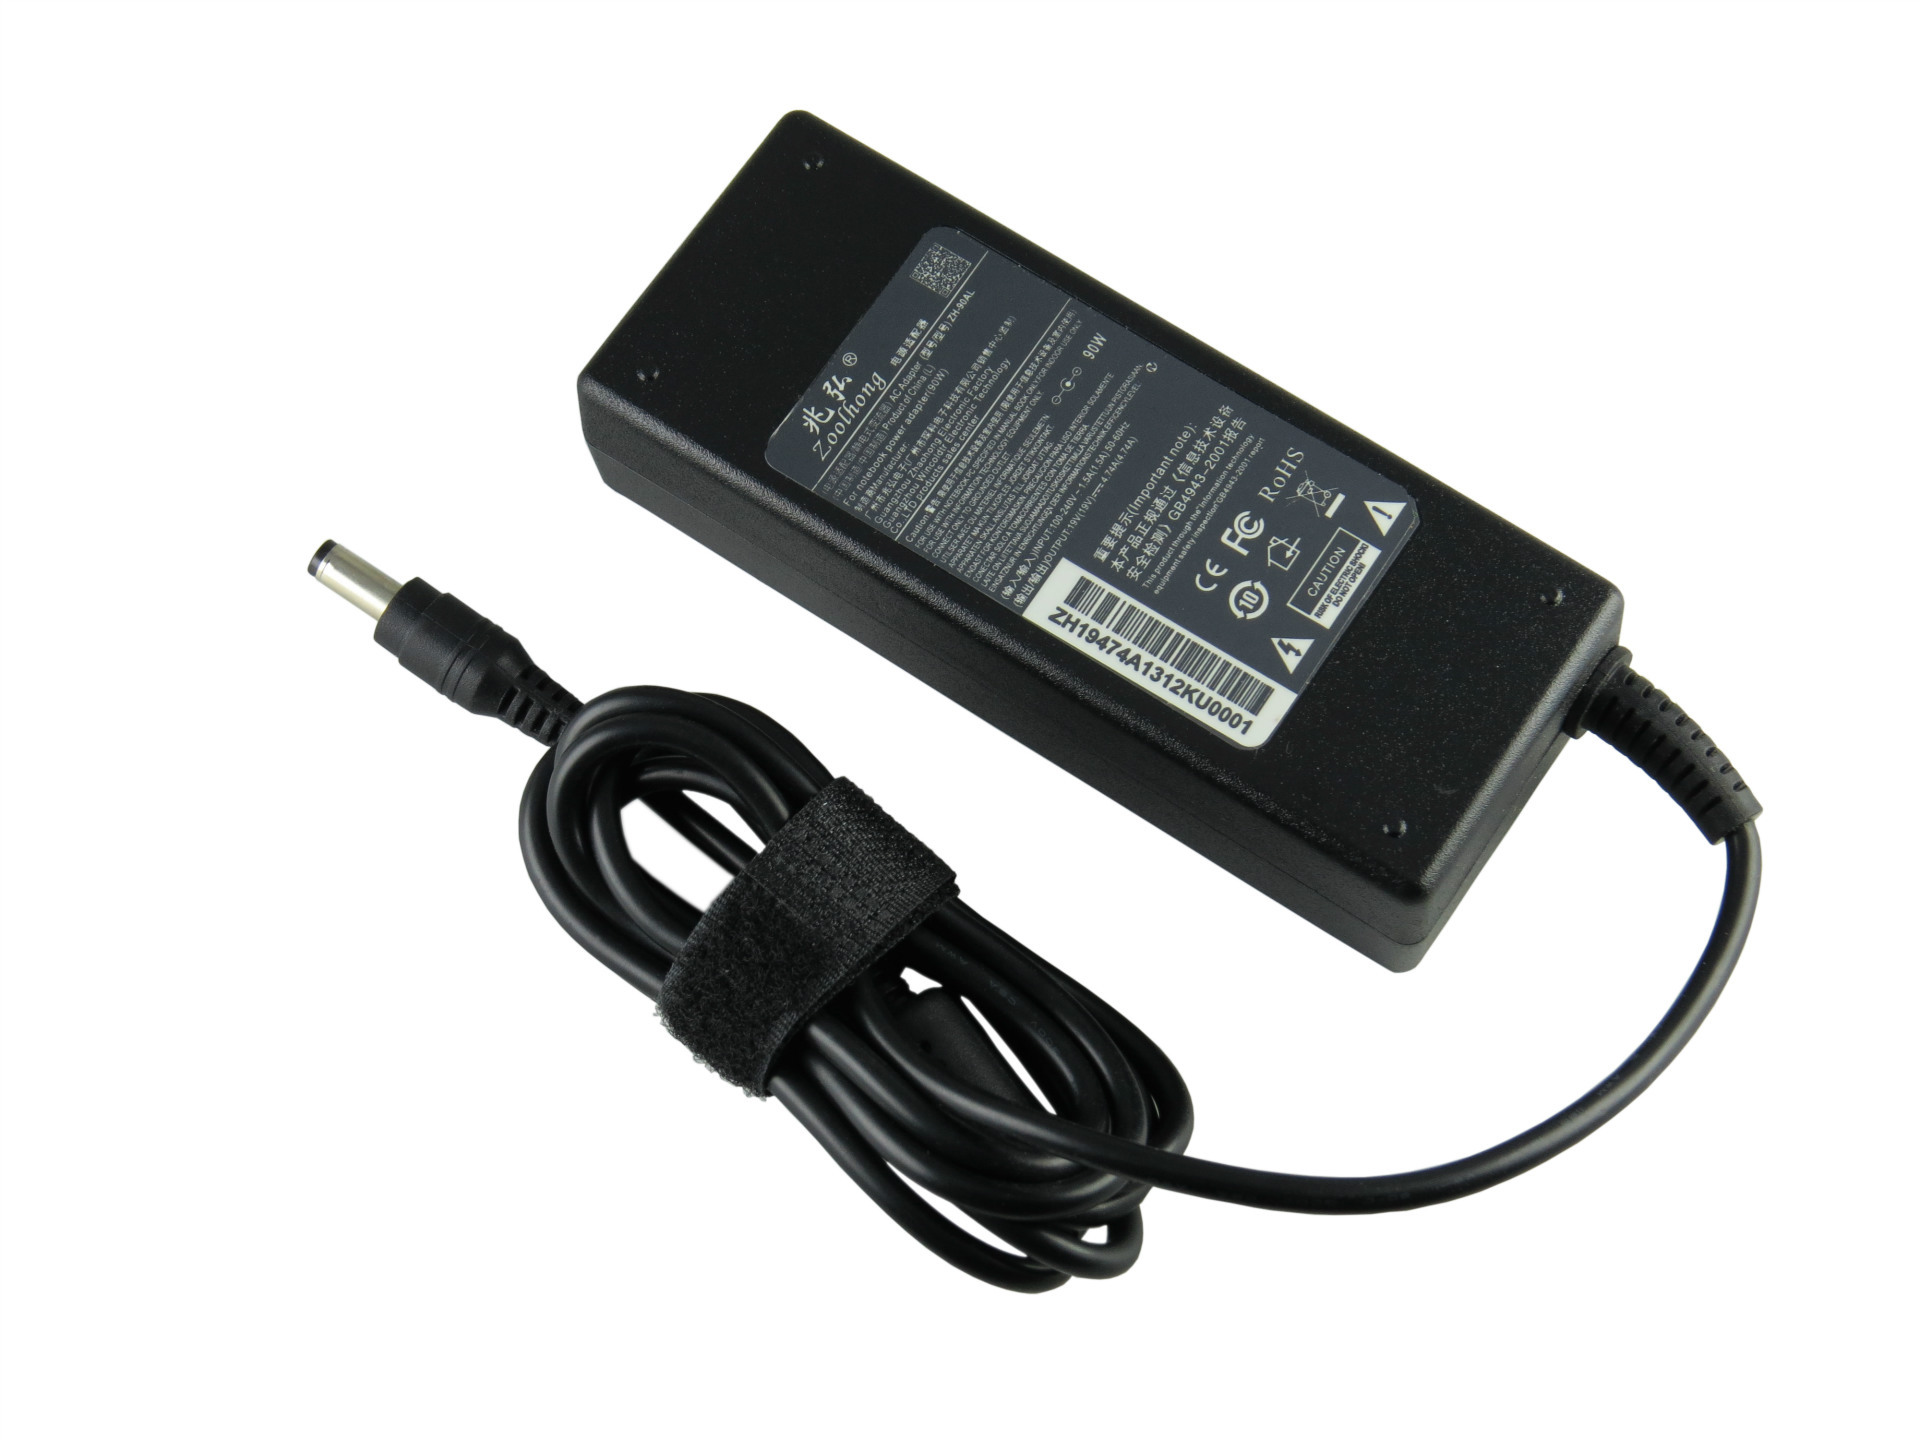 19 V 4.74A Laptop AC Power Adapter Oplader Voor Toshiba PA3165U-1ACA PA3165E-1ACA A105 A300 A500 L500 5.5mm * 2.5mm